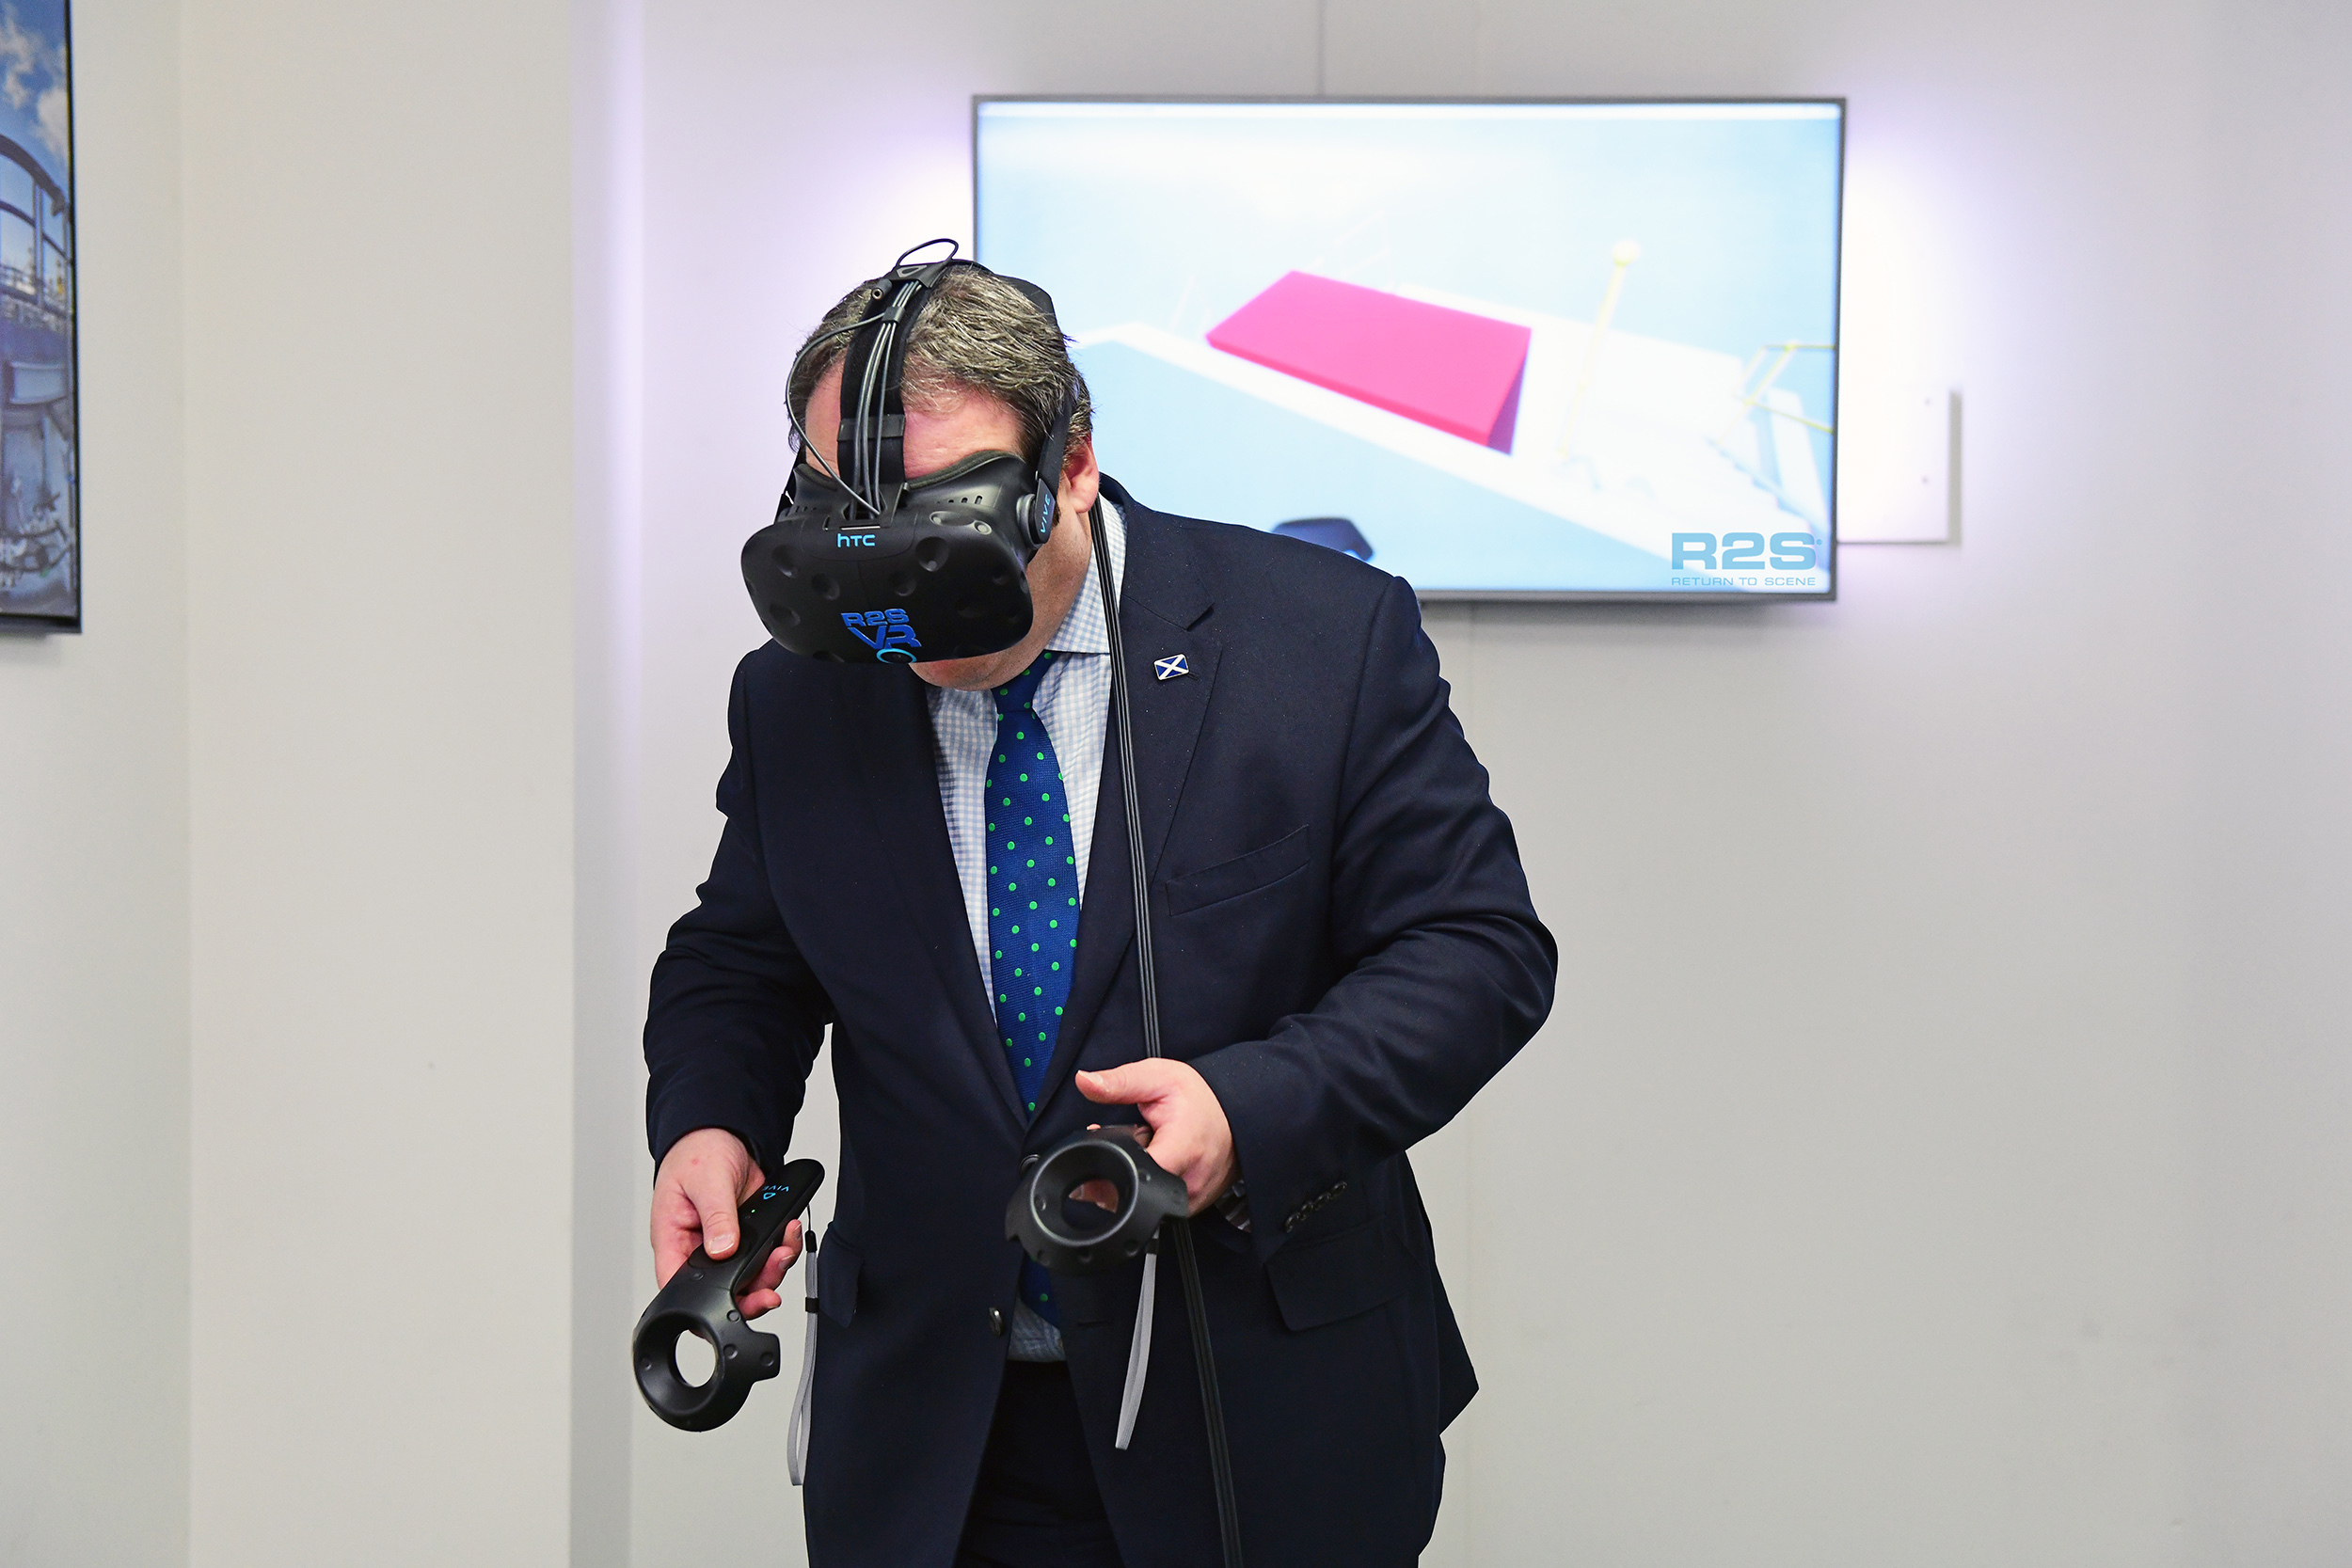 Paul Wheelhouse testing out virtual reality tech during his visit to Return To Scene